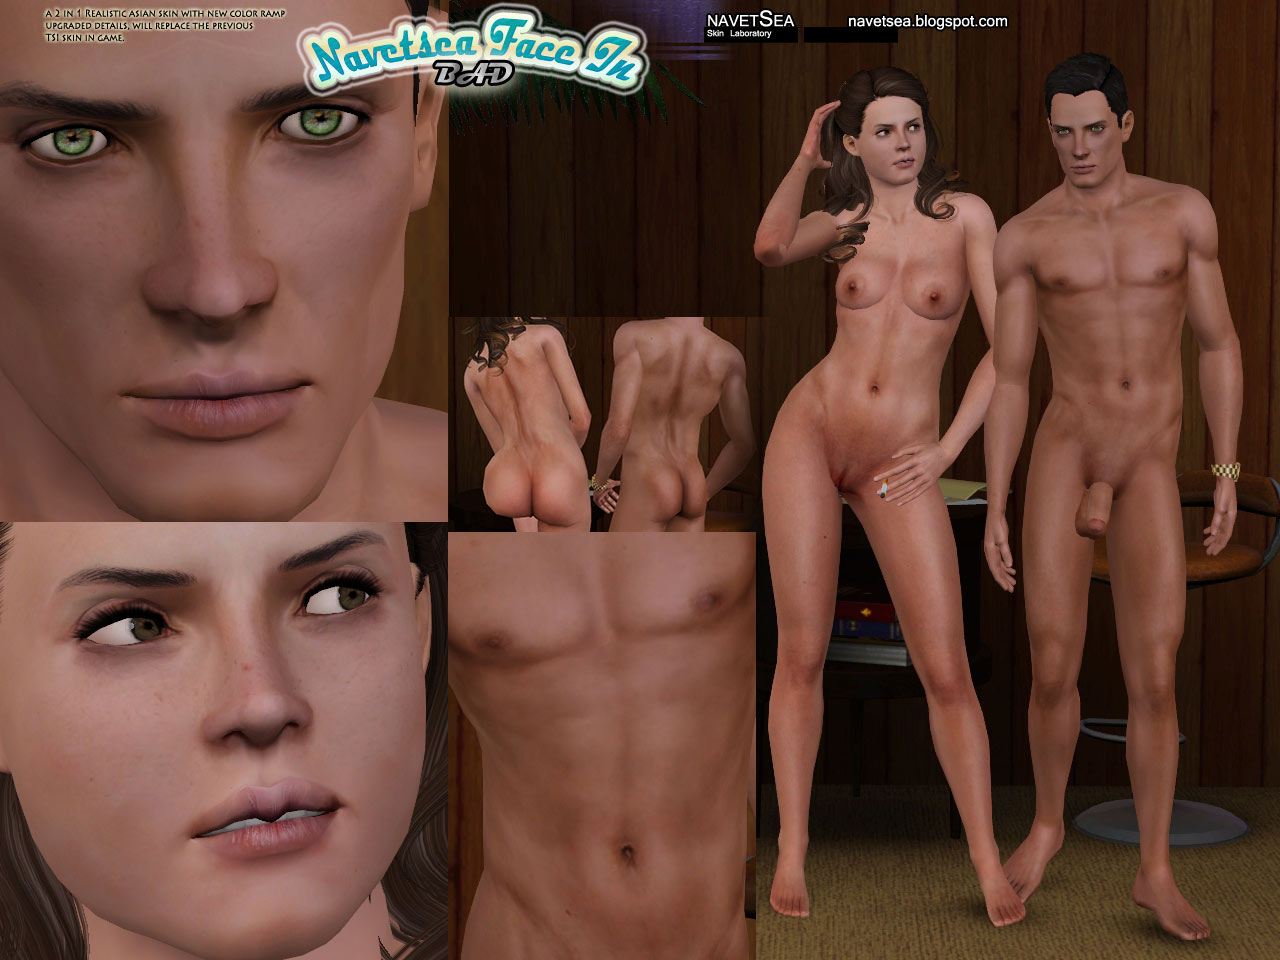 Youtube naked sims mod nude picture